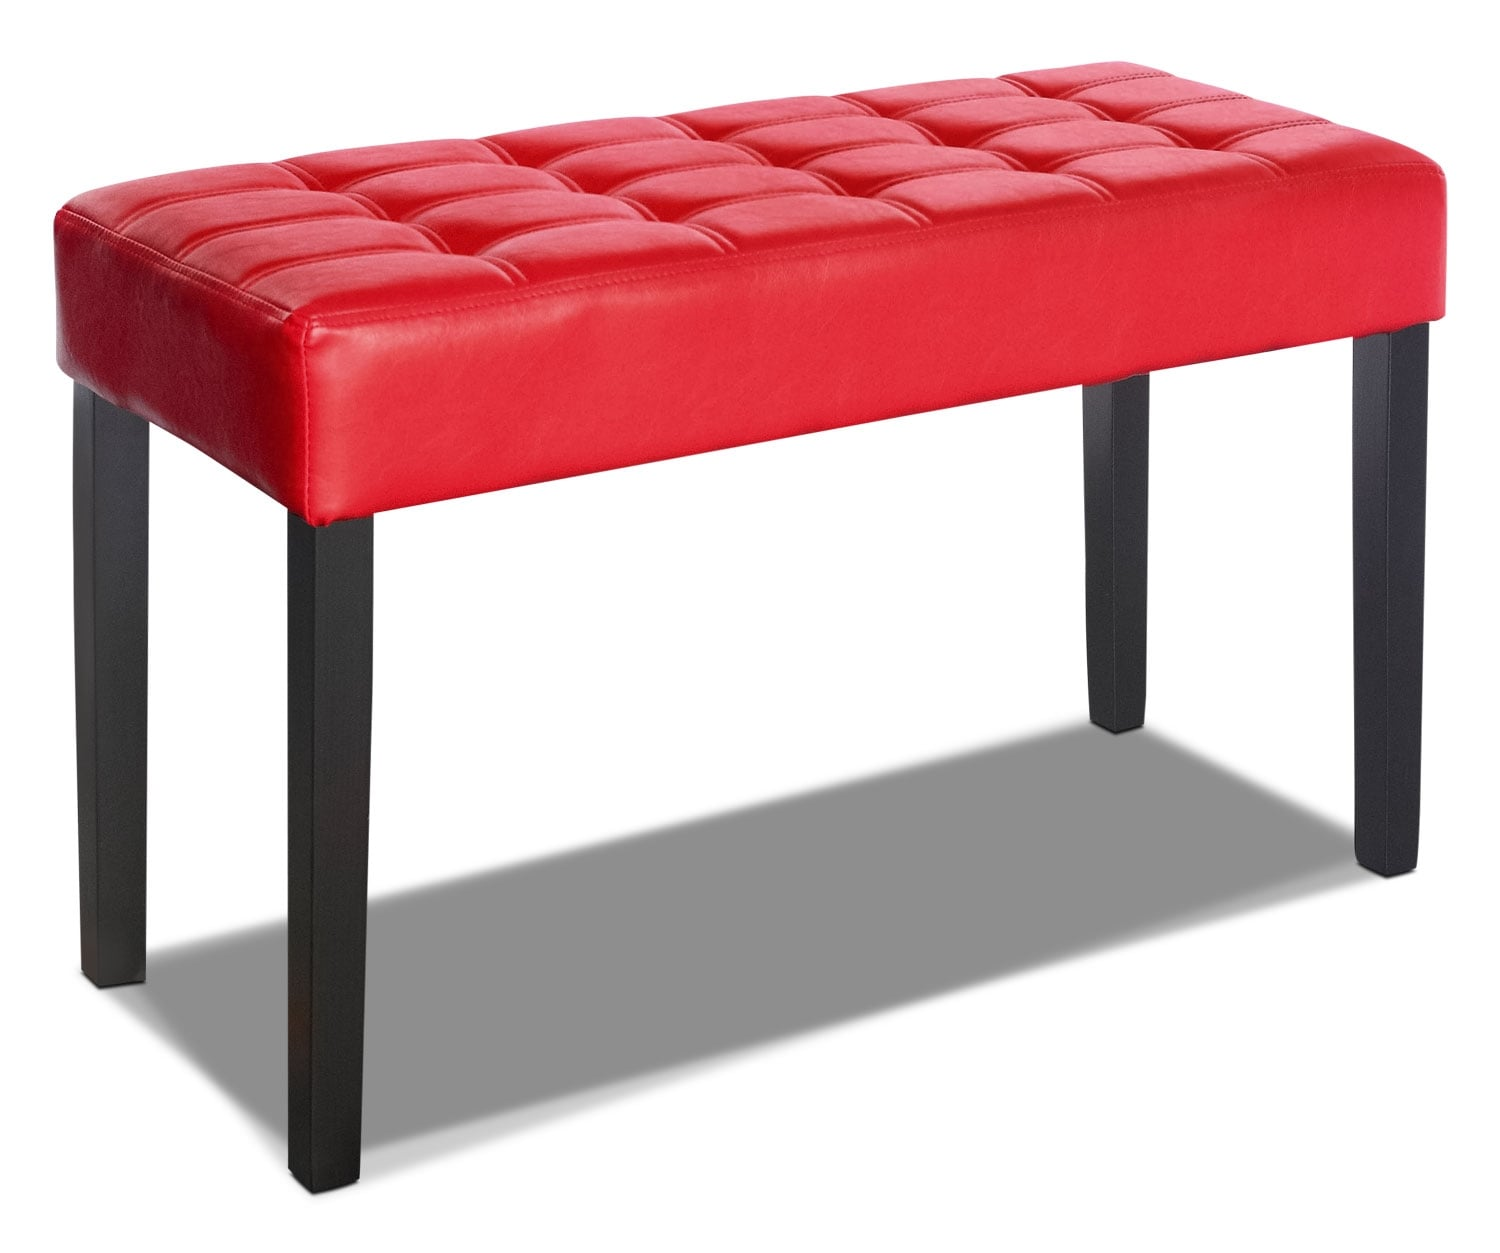 Cali Tufted Bench – Red